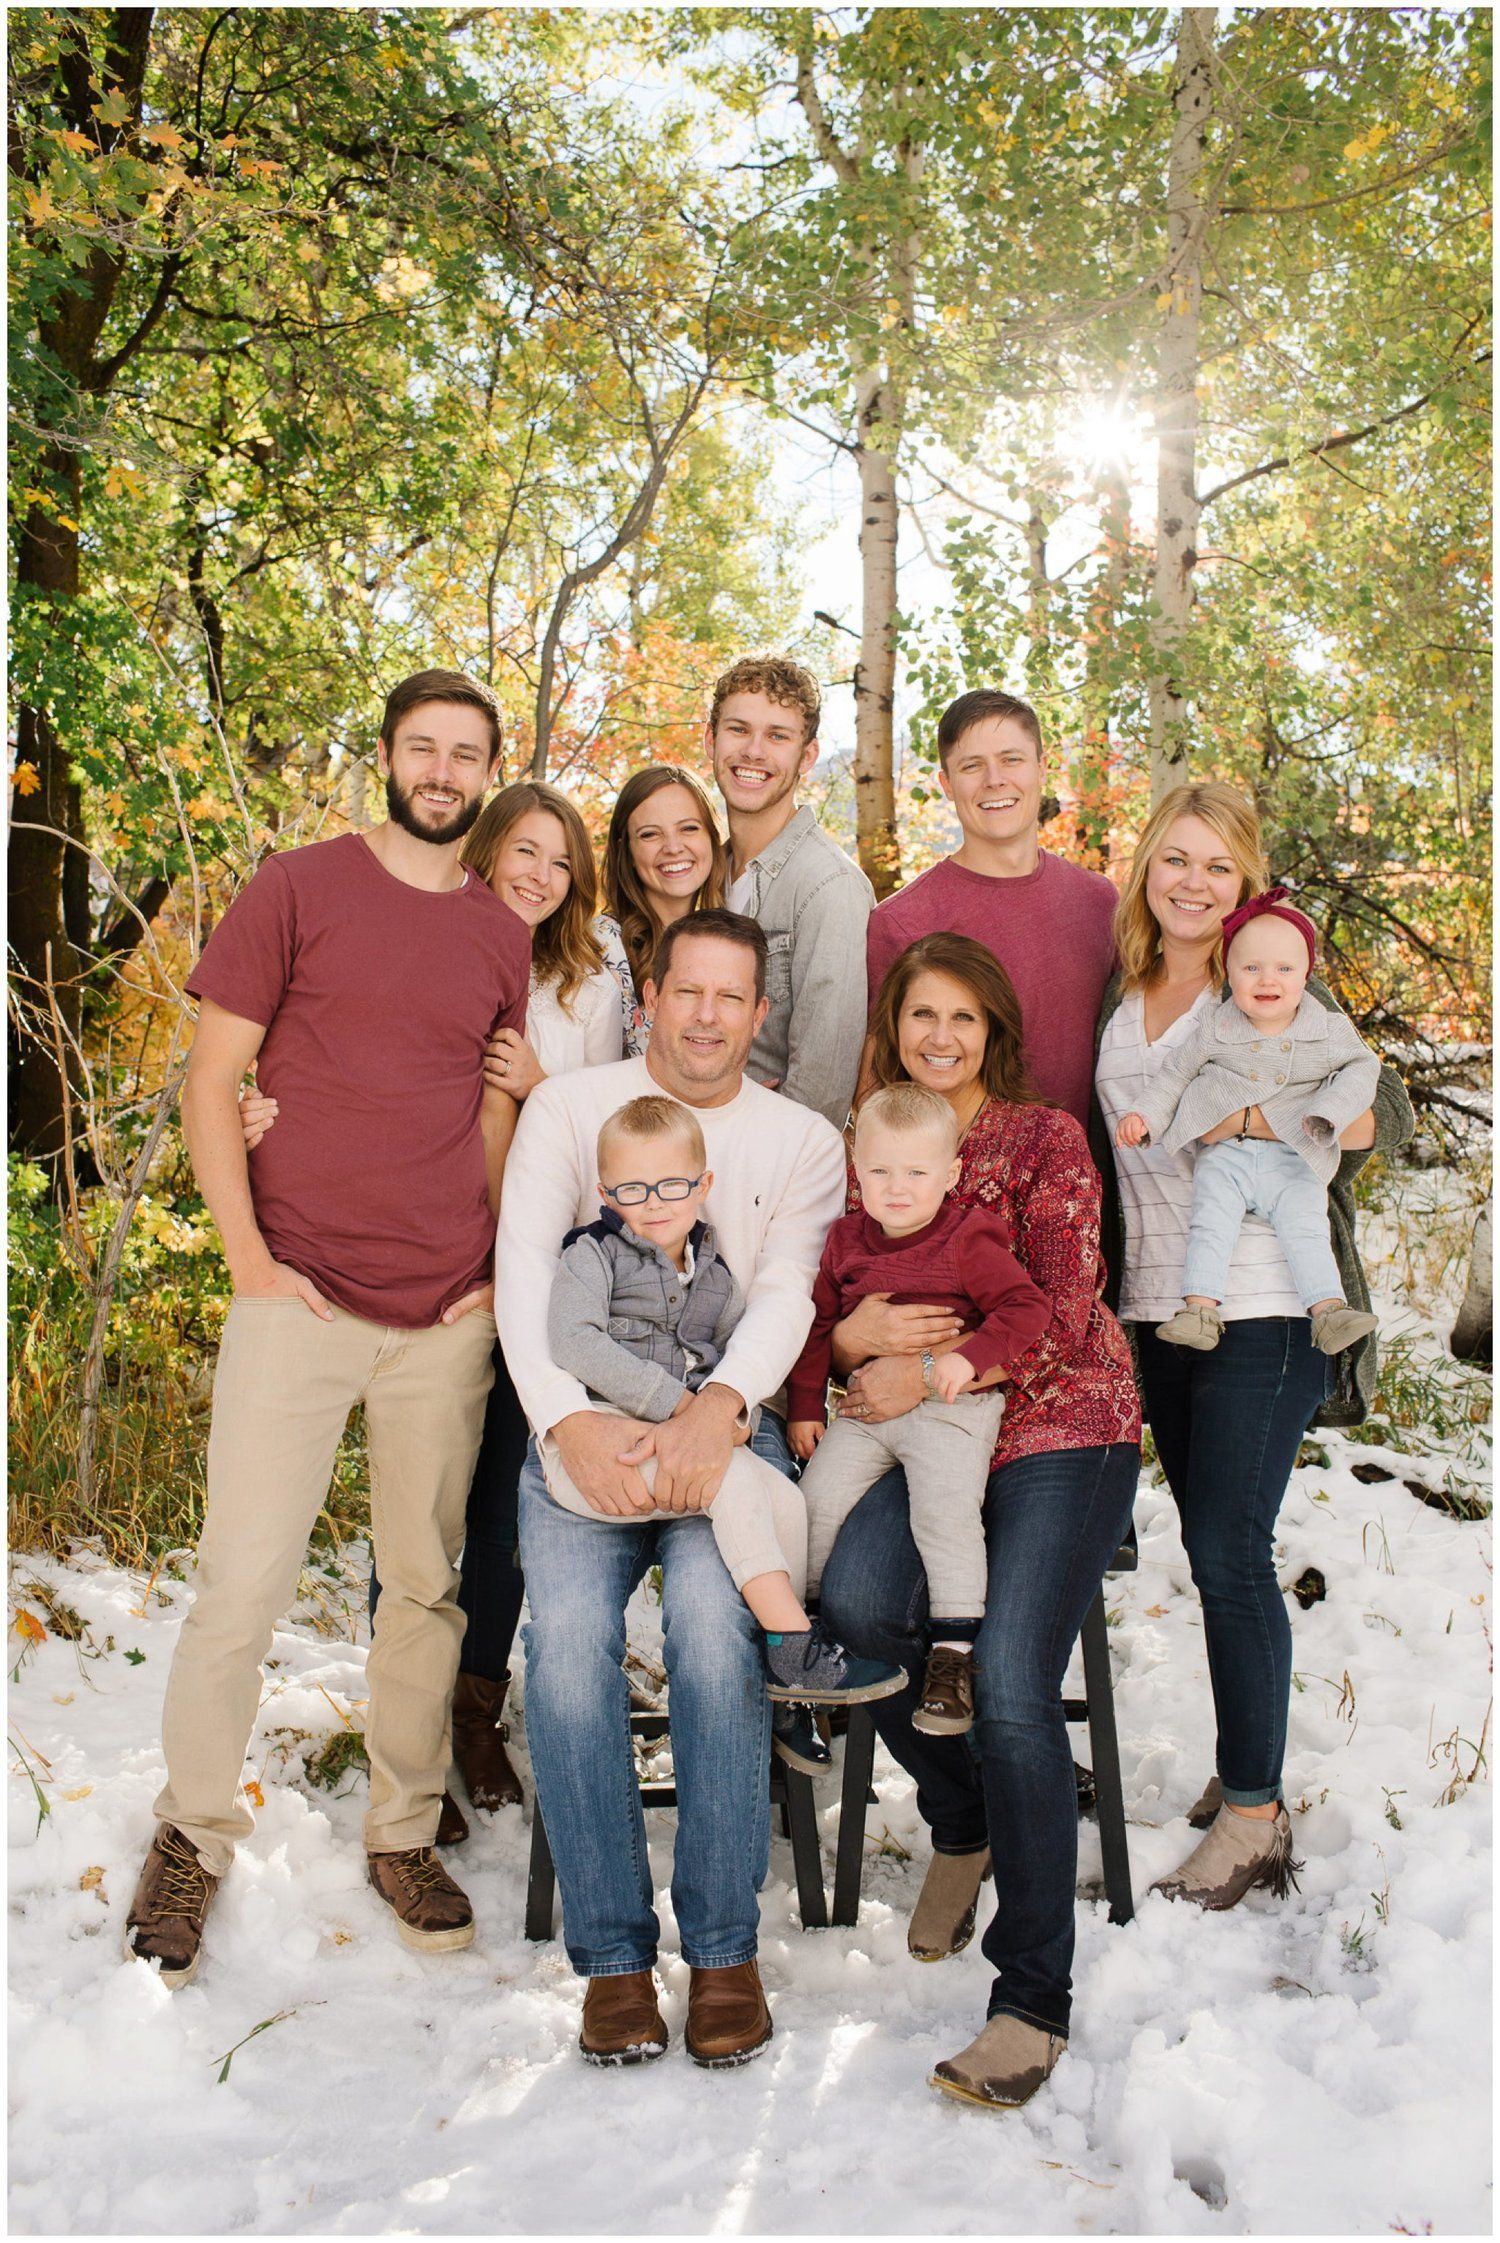 squaw peak provo canyon utah extended family pictures large family poses and extended family. Black Bedroom Furniture Sets. Home Design Ideas